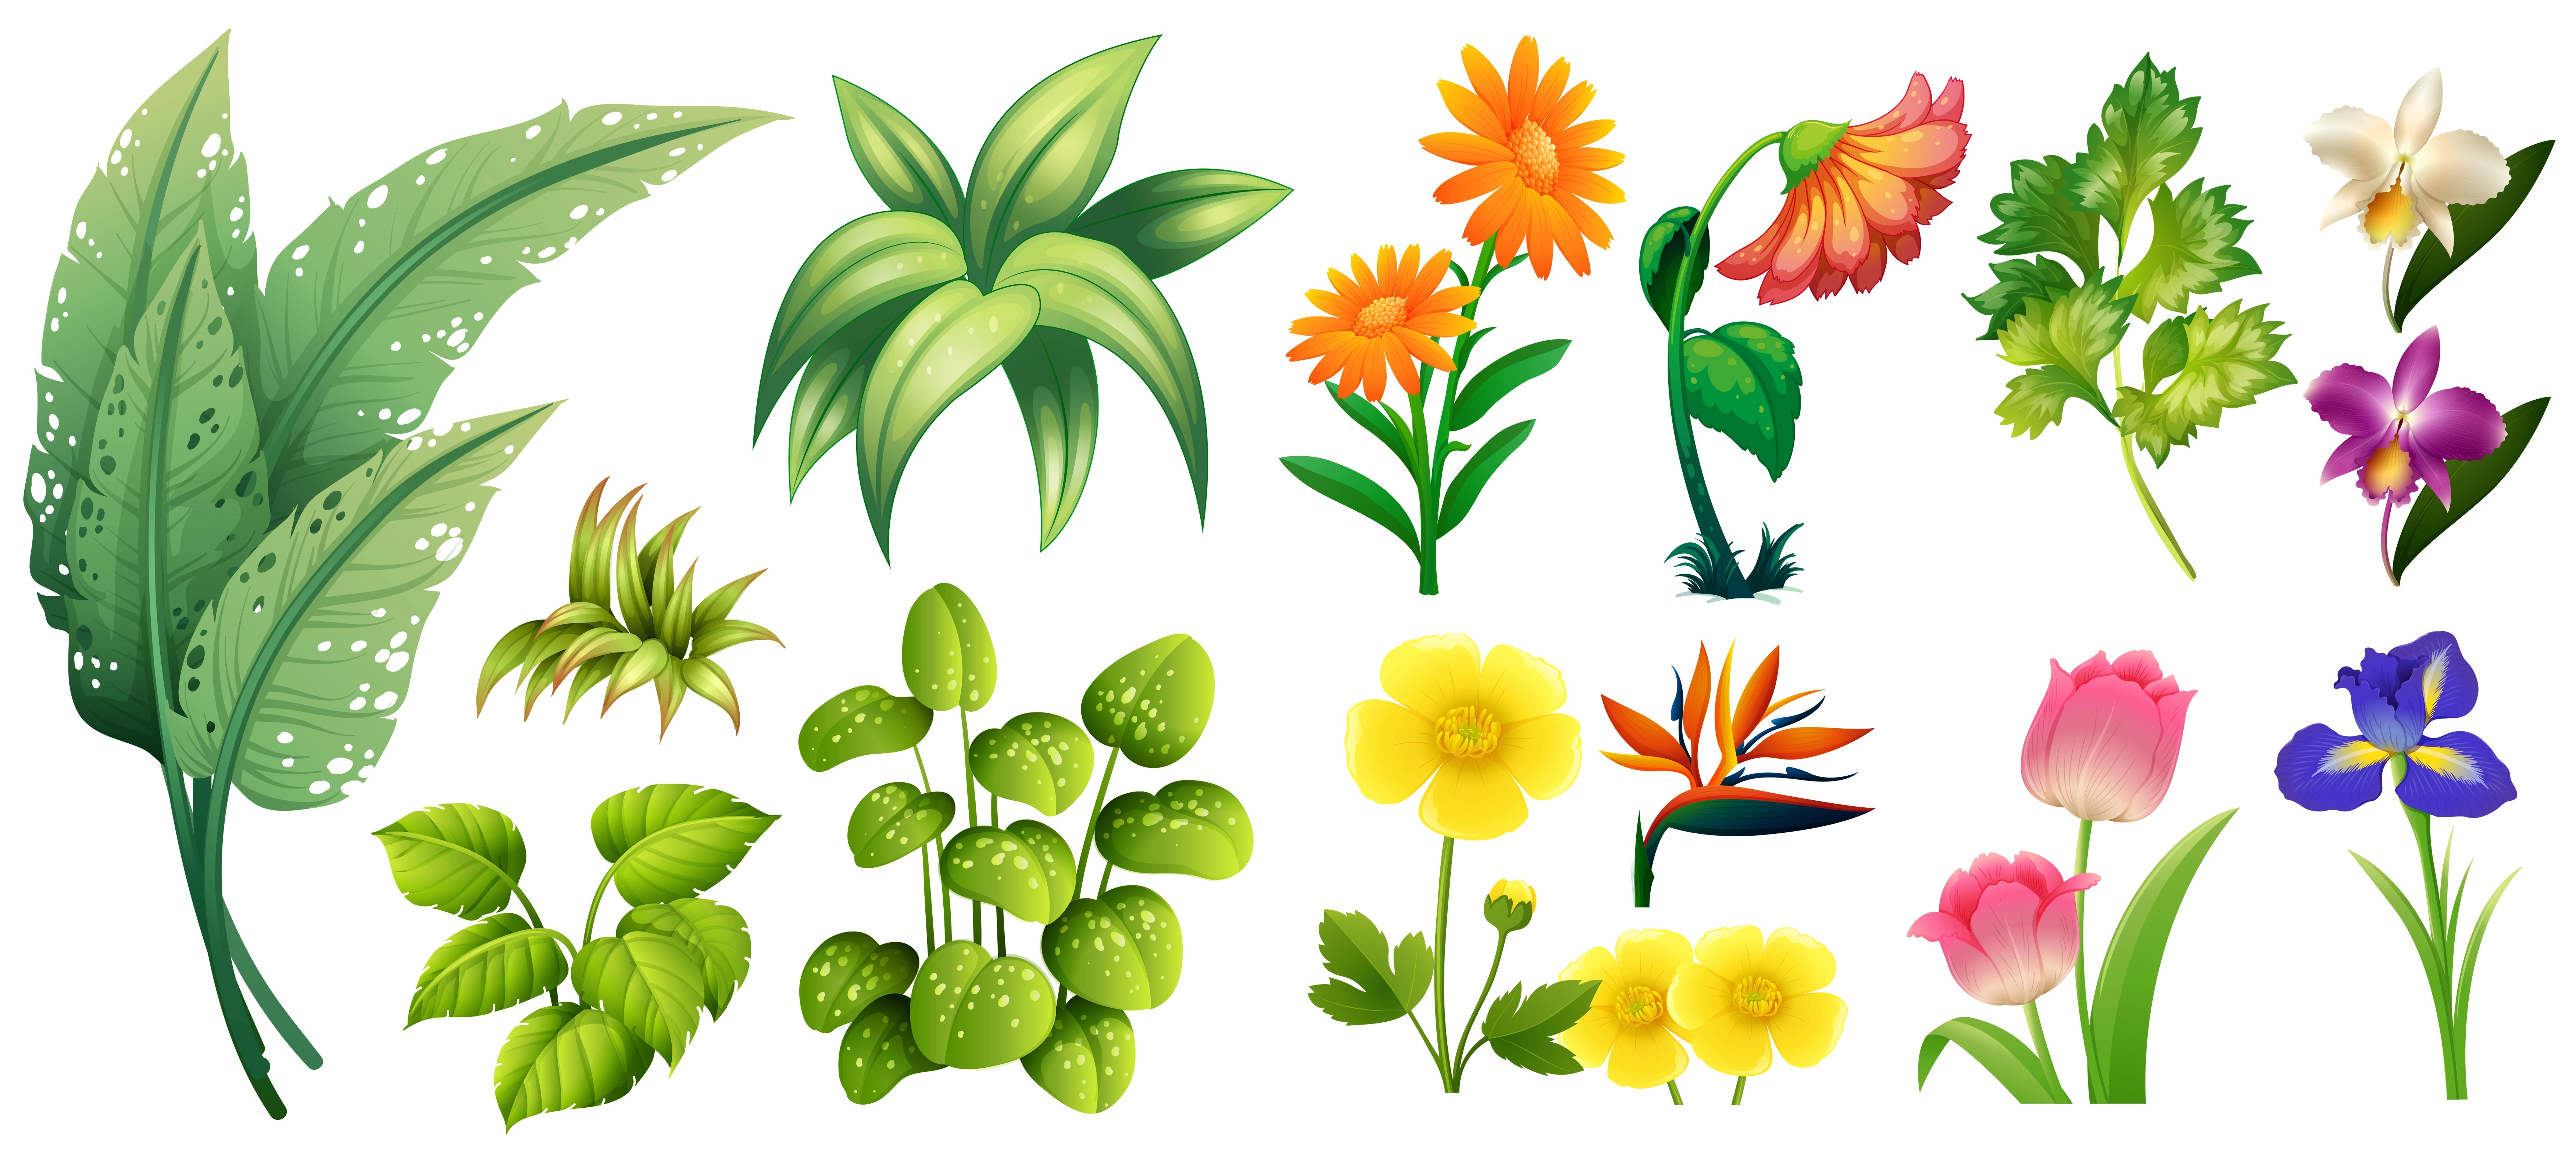 Different Types Of Flowers And Leaves